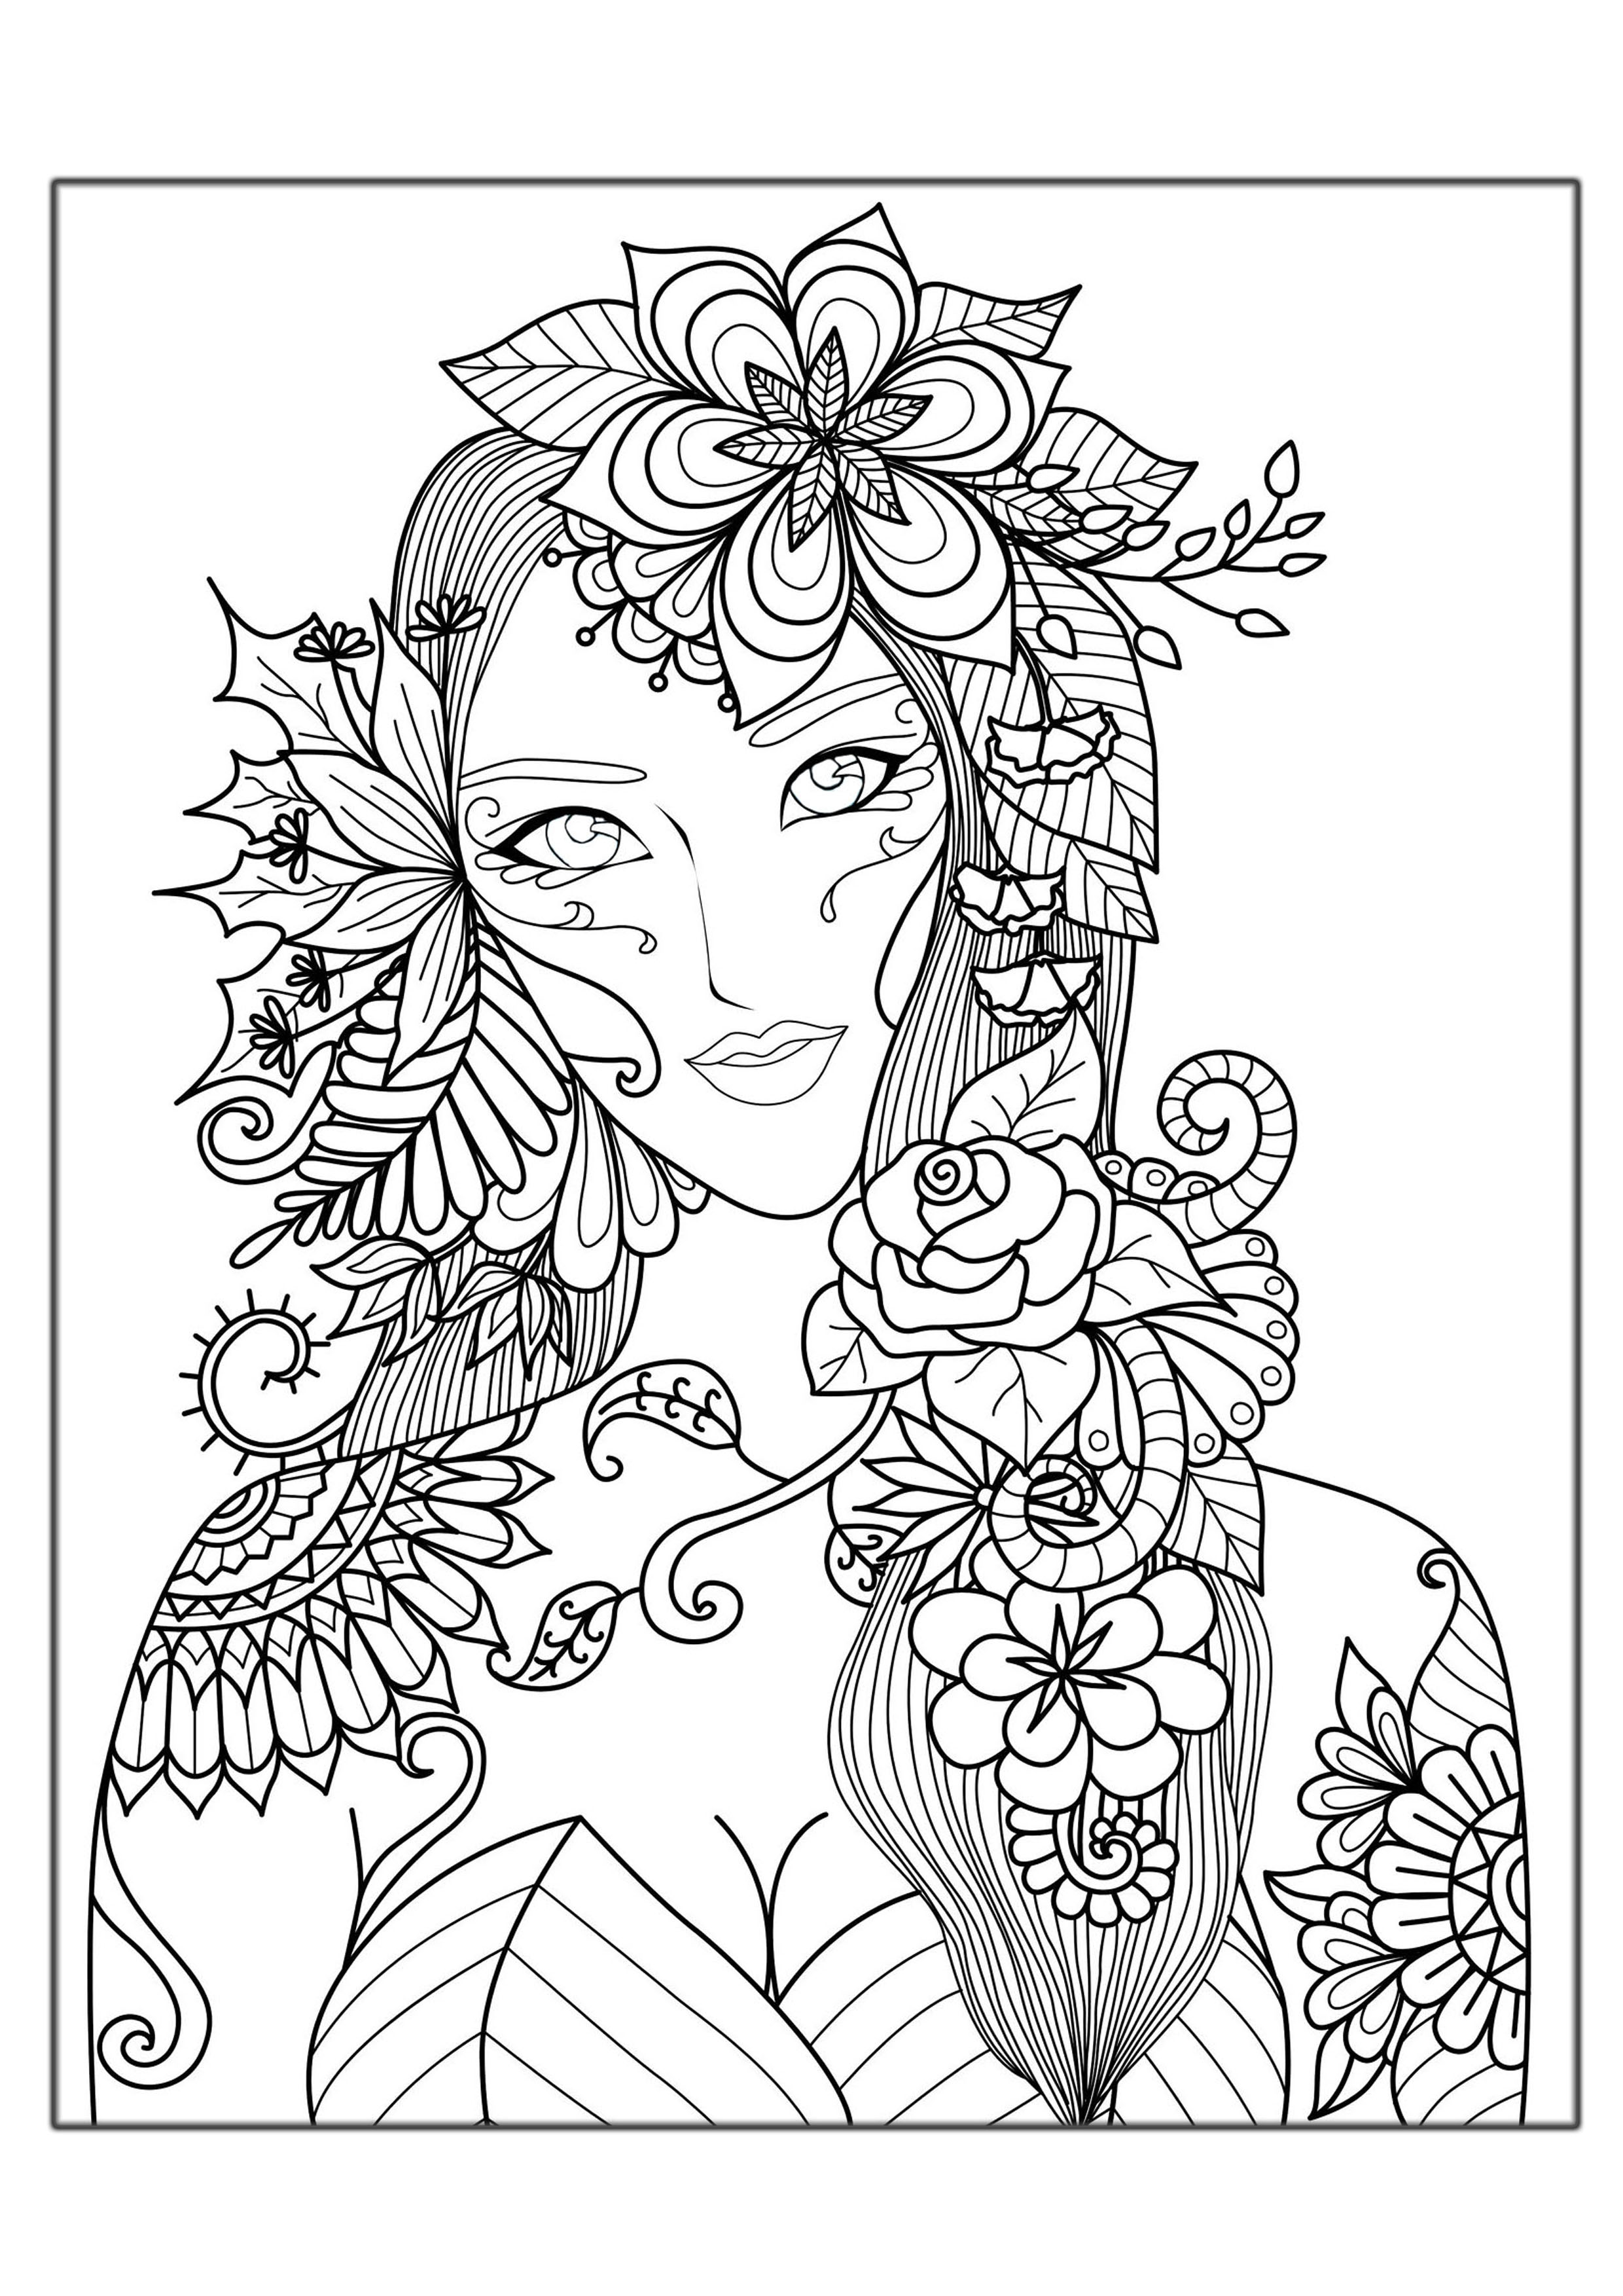 coloring games for adults hard coloring pages for adults best coloring pages for kids coloring for adults games